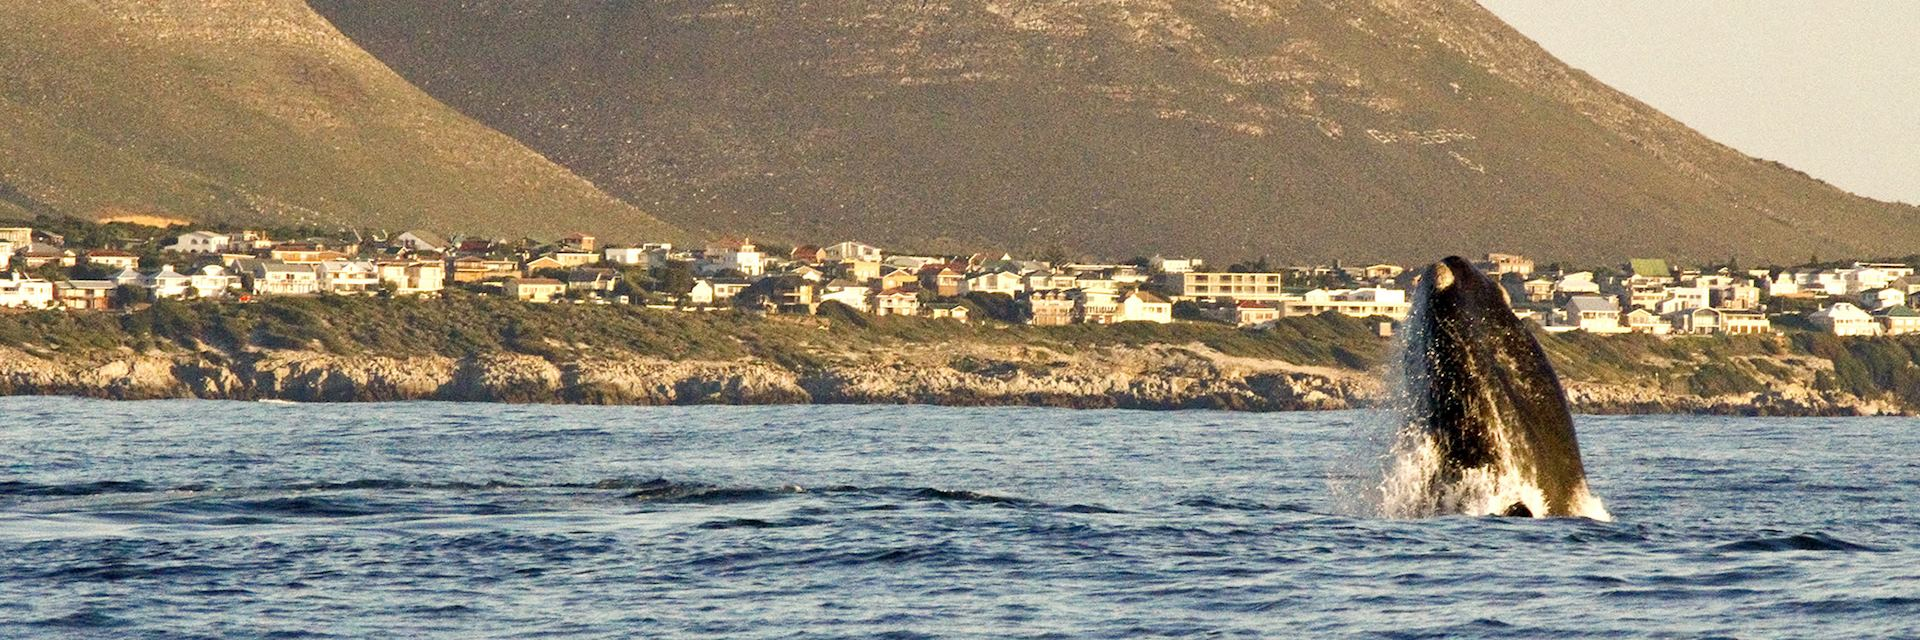 Southern right whale close to the shore in Hermanus